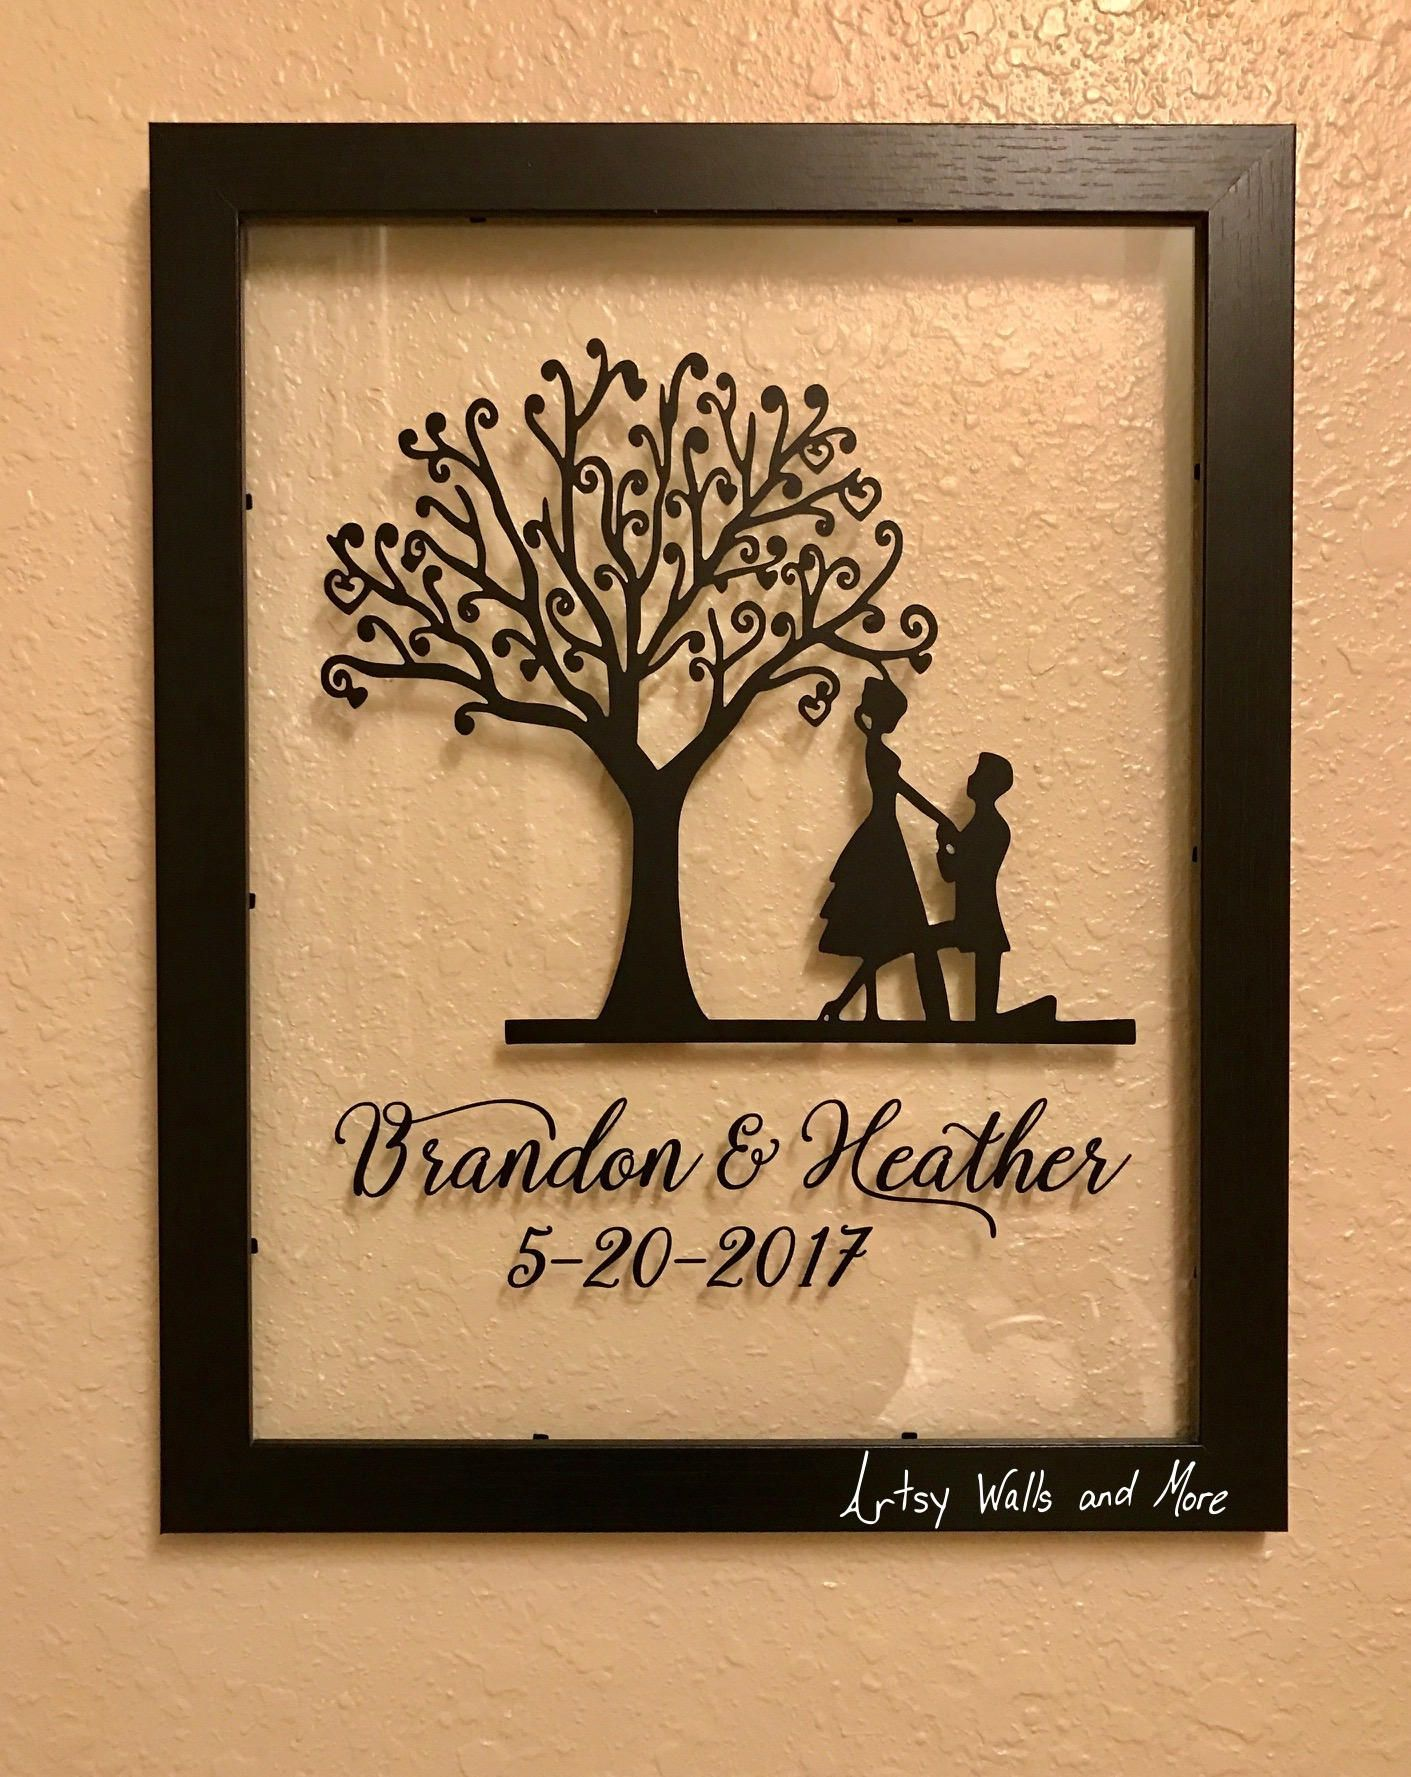 Wedding Picture Gift Personalized Wedding Gift Monogram Dated Wedding Shower Gift Gift Diy Wedding Gifts Personalized Wedding Gifts Wedding Gifts For Bride